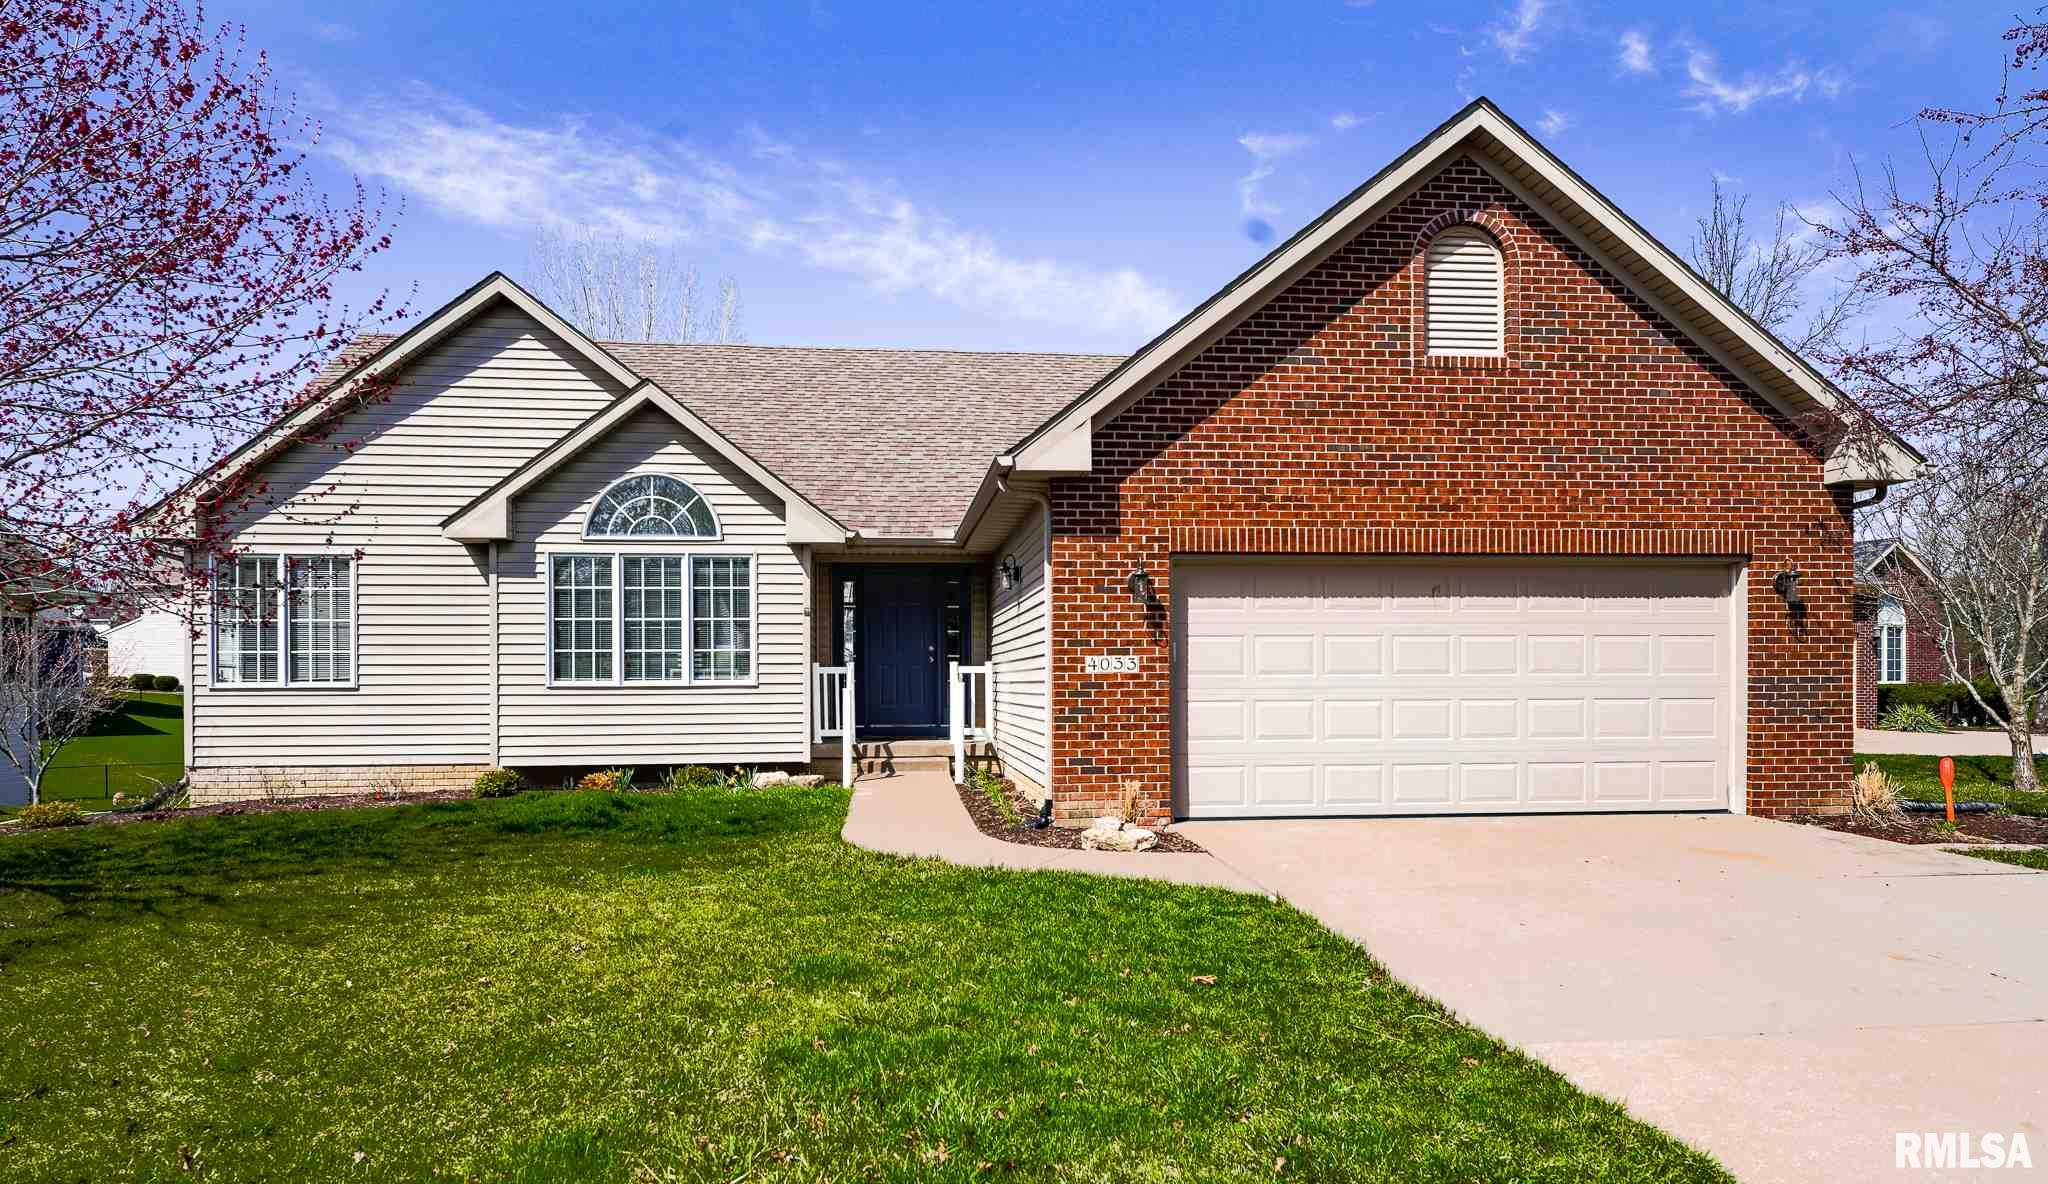 4033 4TH Property Photo - East Moline, IL real estate listing